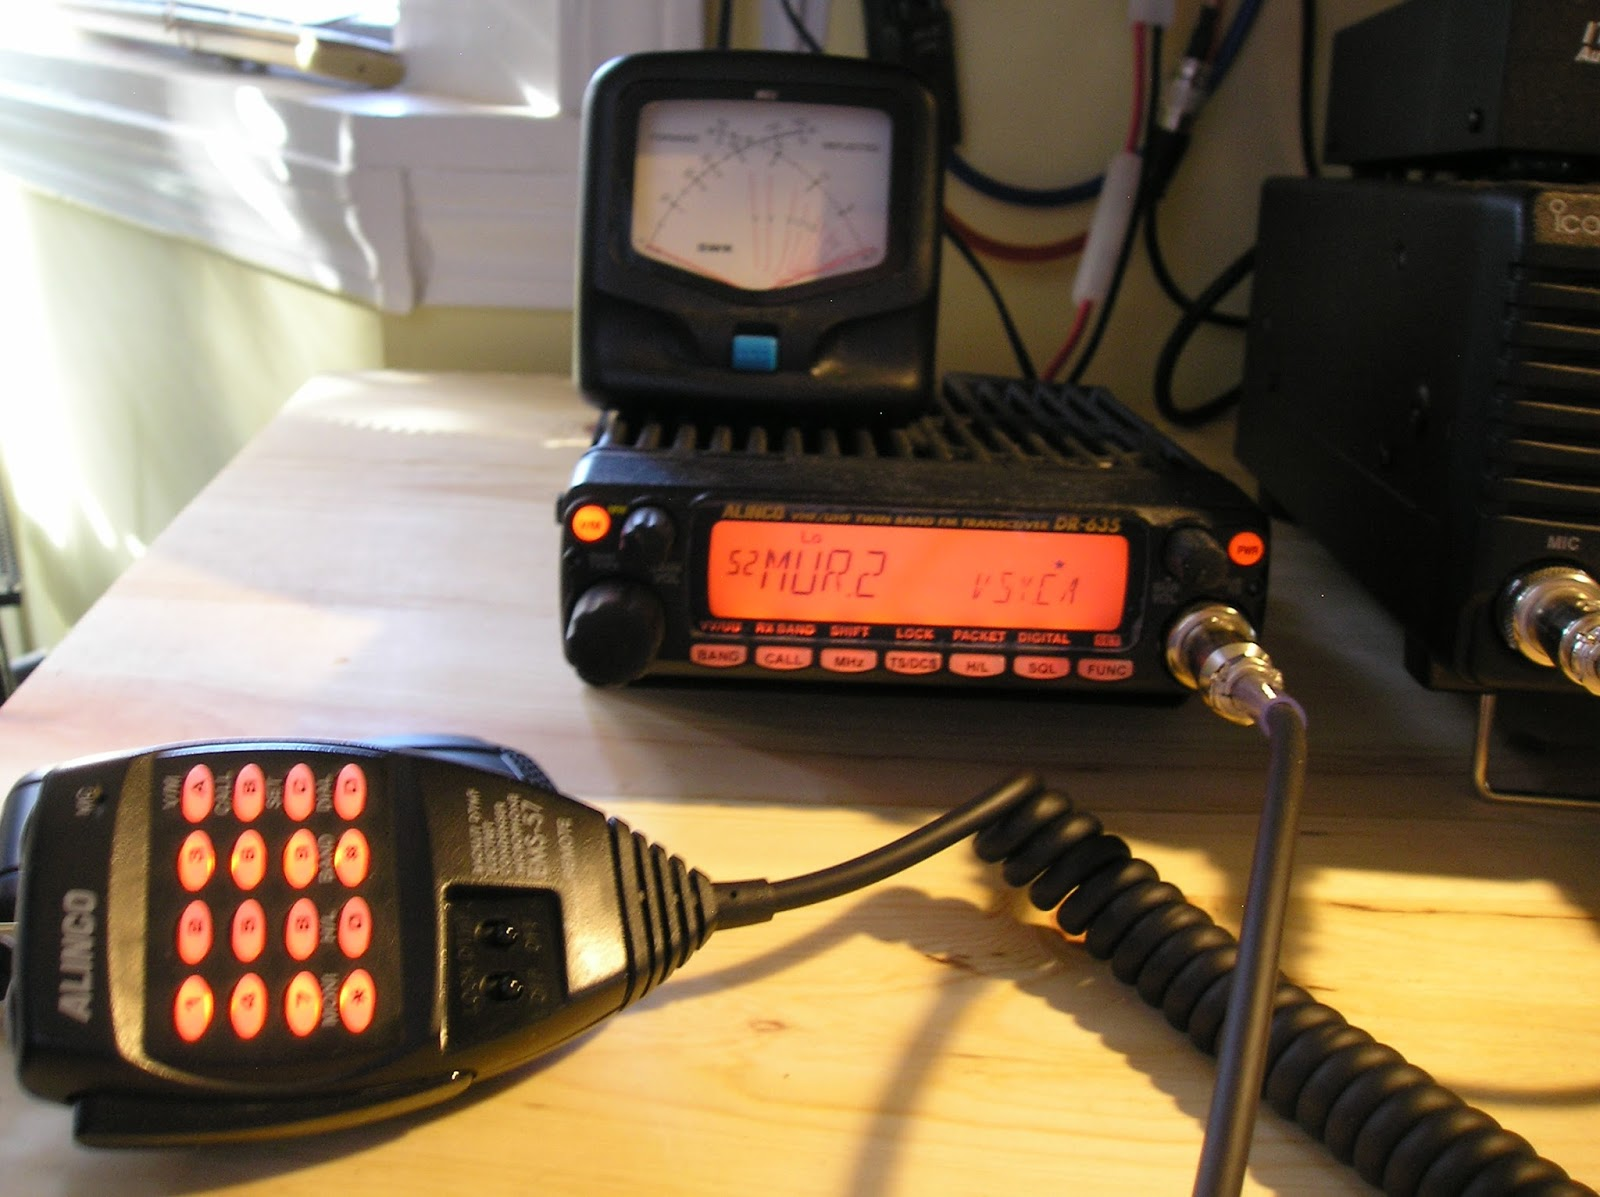 To license or not to license with amateur radio - WND